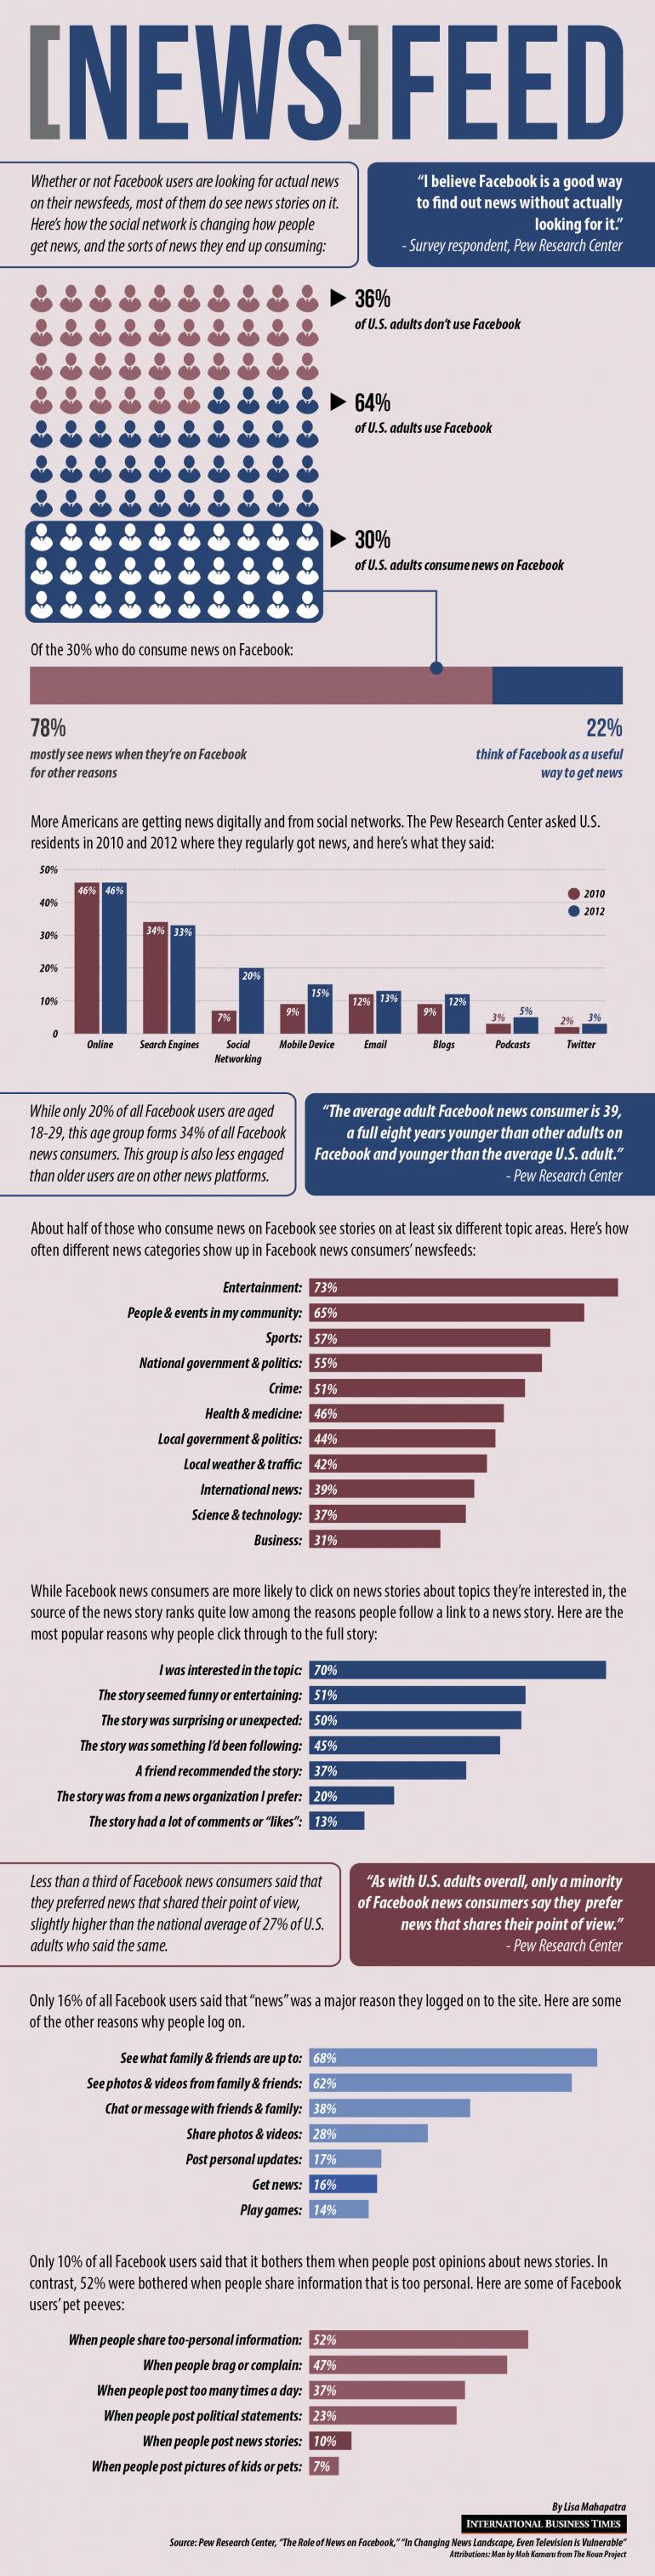 How Facebook Users Consume News On Their News Feed [INFOGRAPHIC] #socialmedia